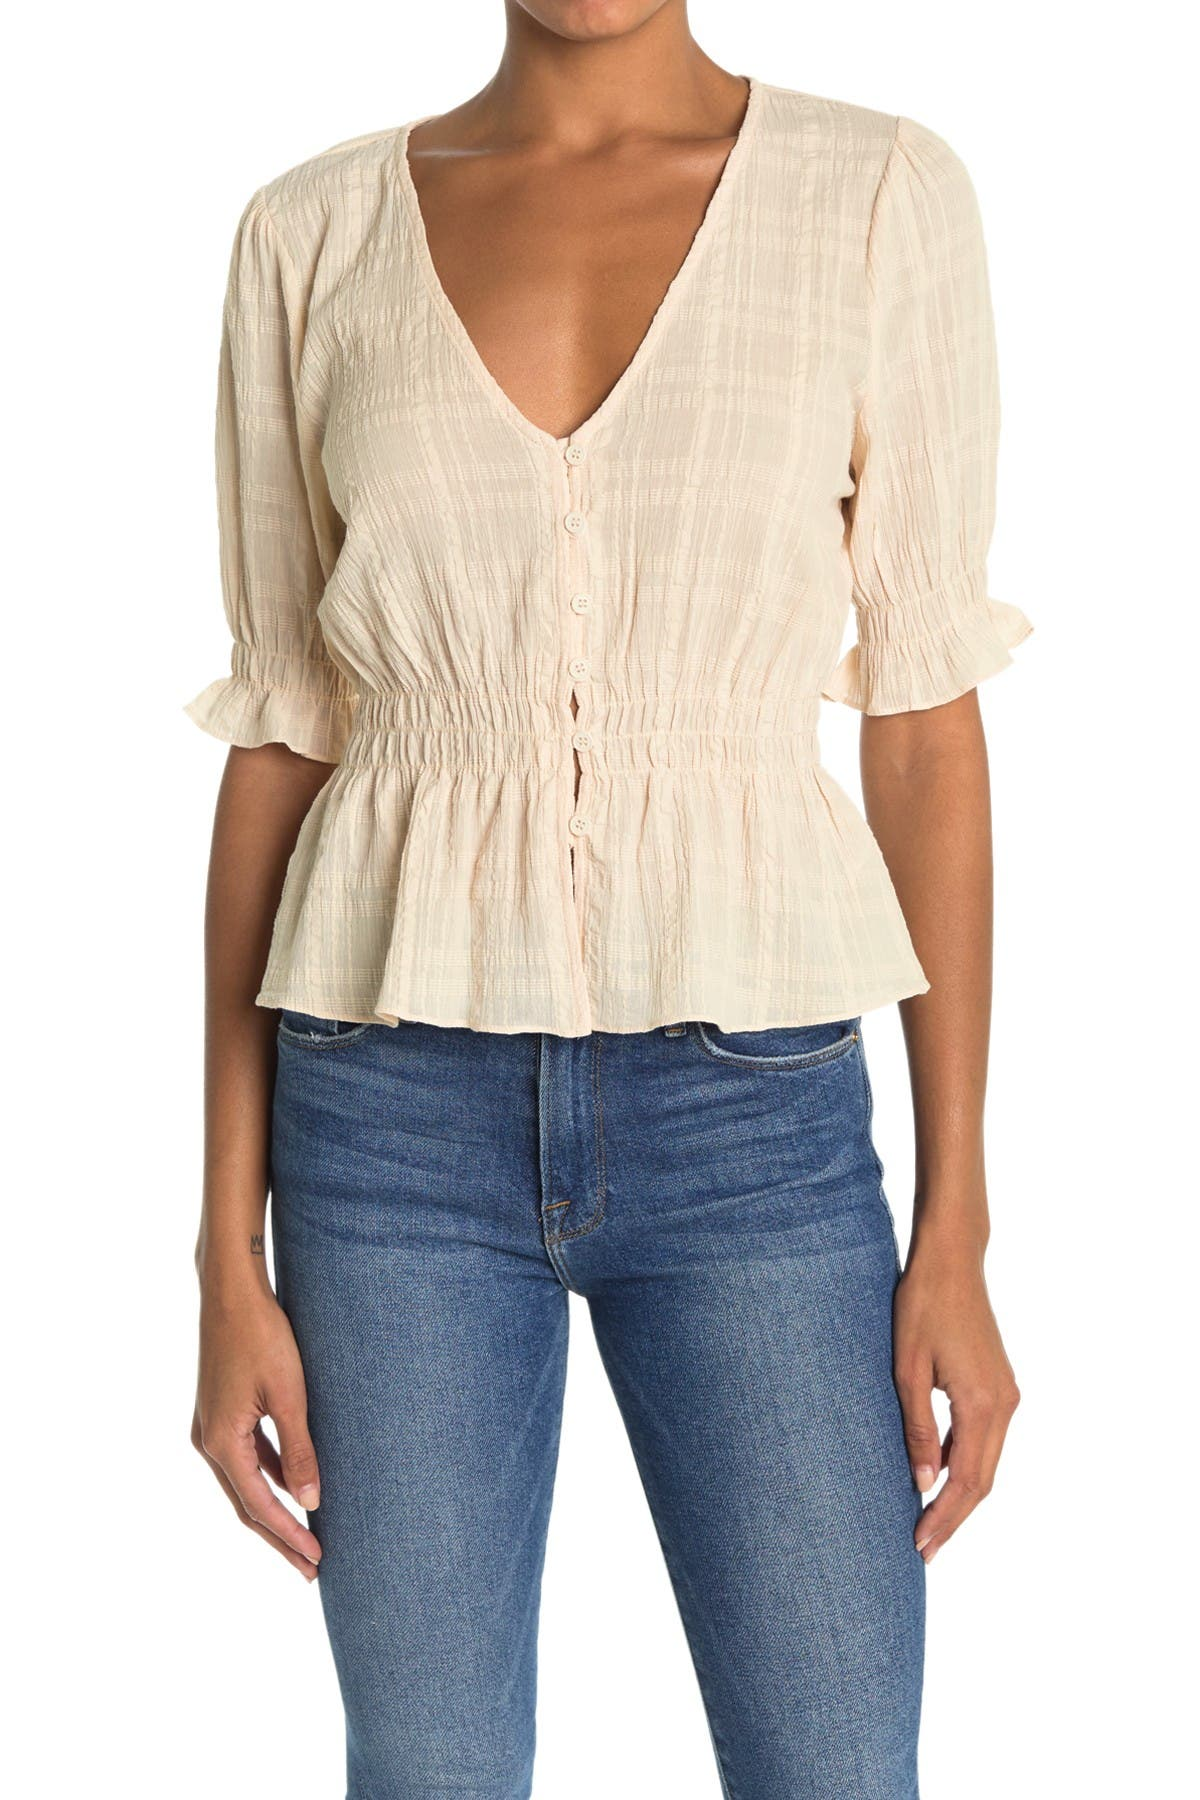 Image of Lush Shirred Button Top